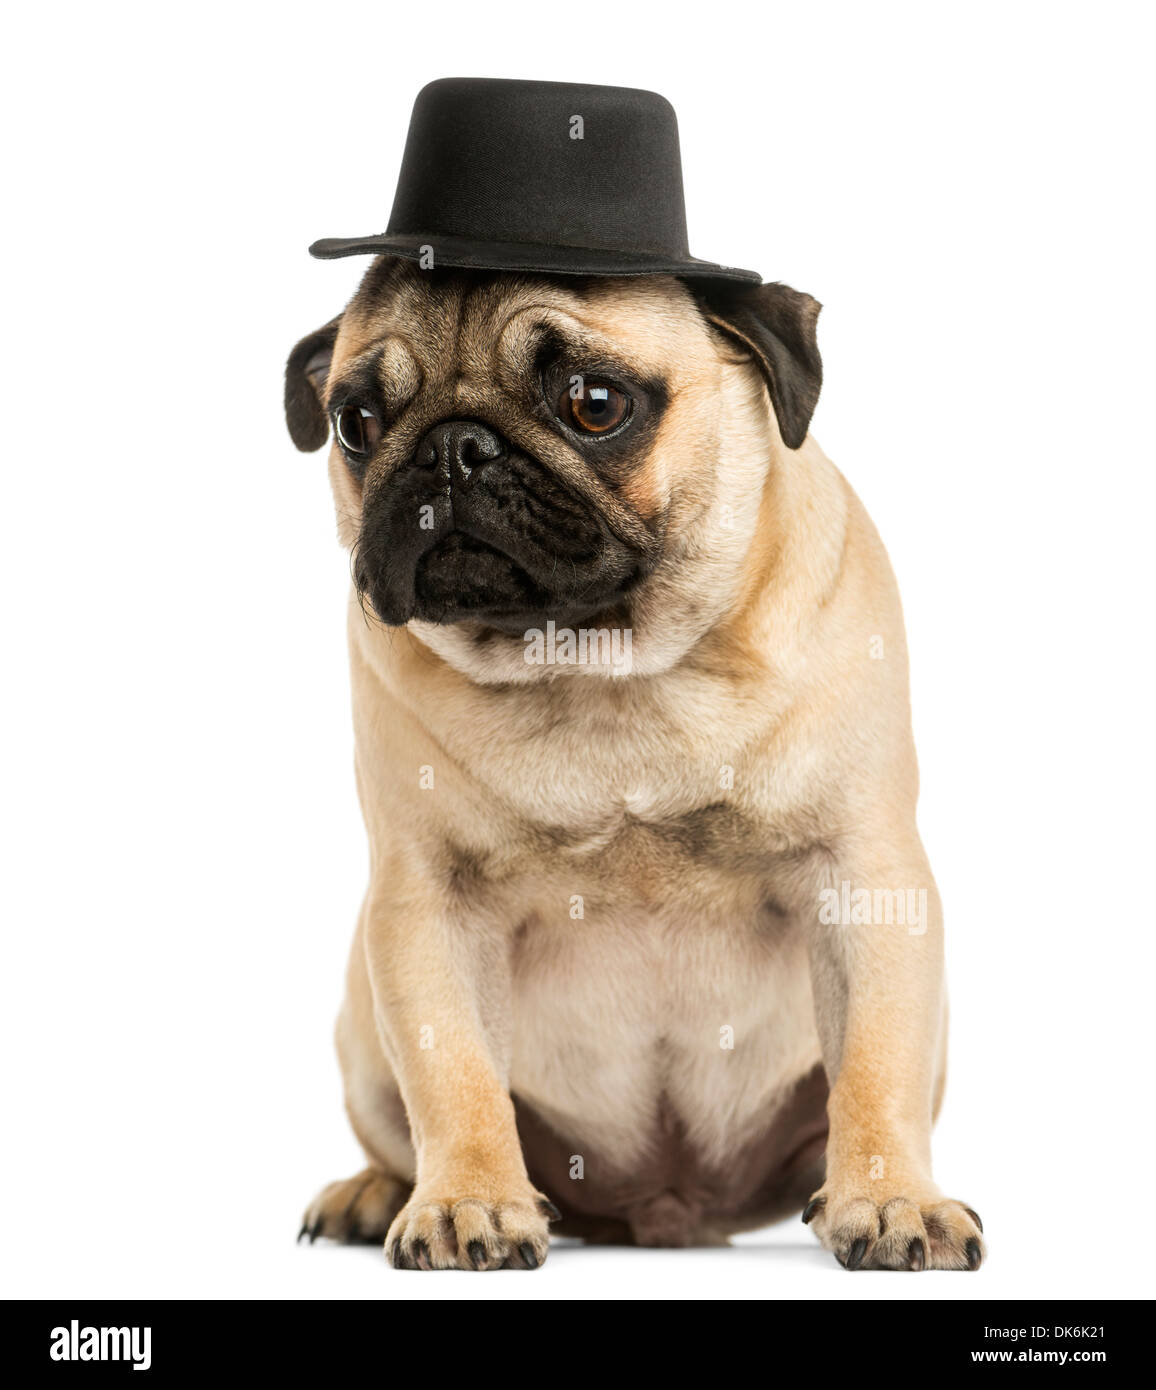 Front view of a Pug puppy wearing a top hat, sitting, 6 months old, against white background - Stock Image